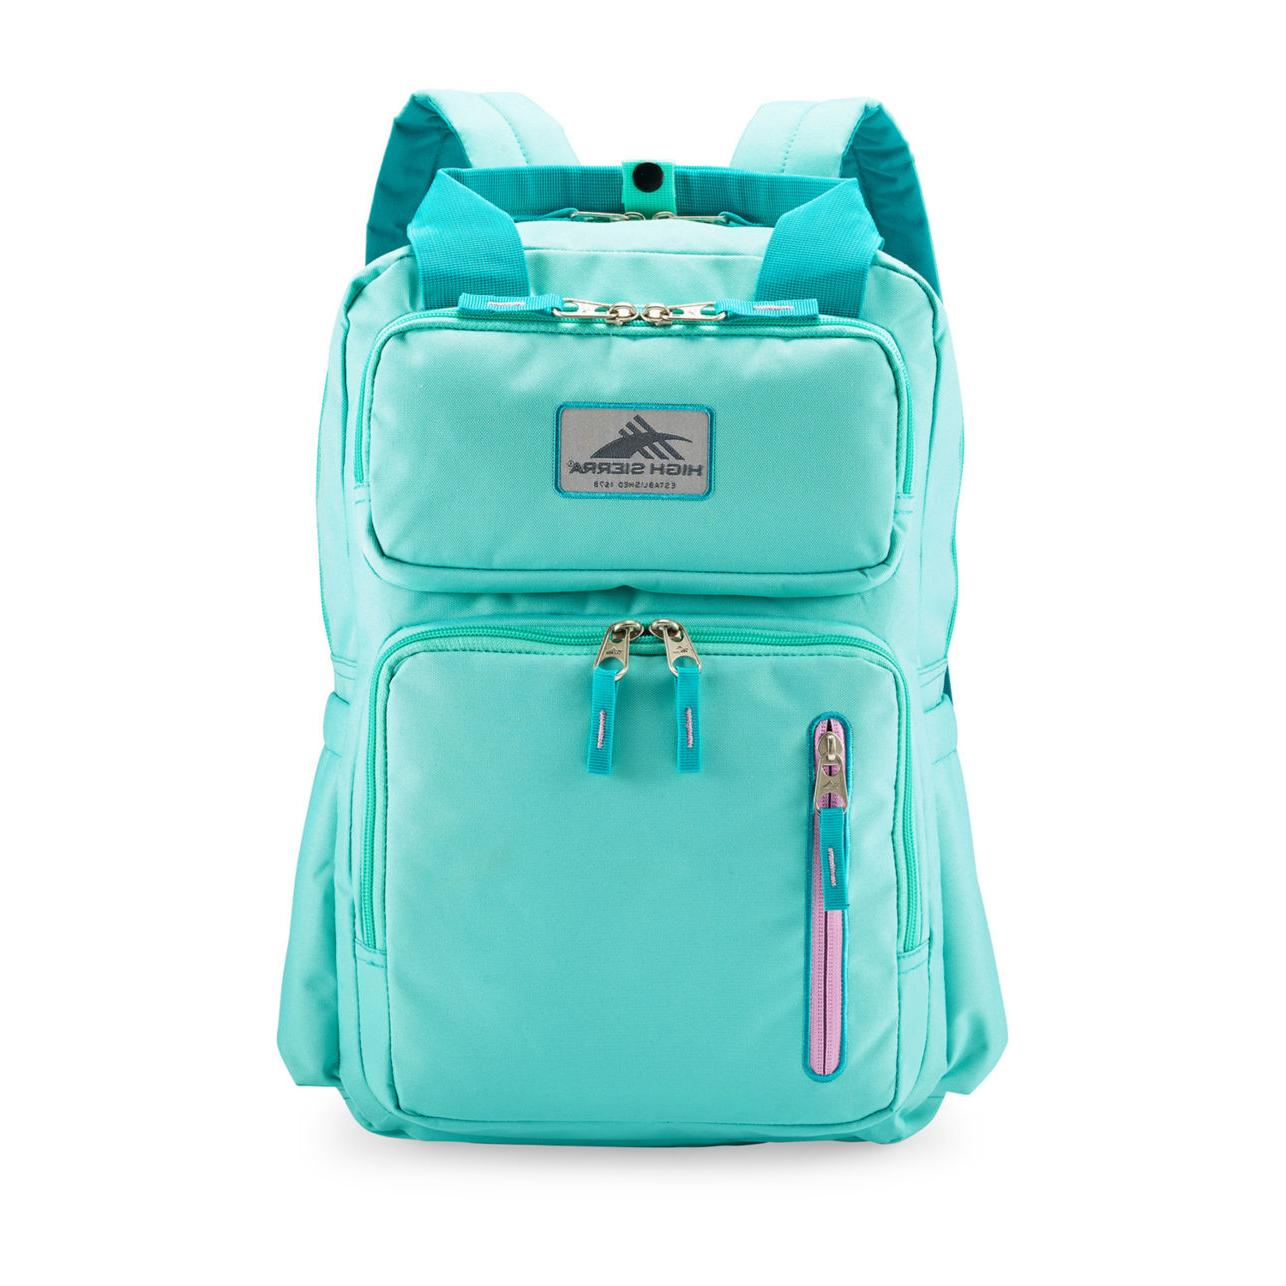 High Sierra Mindie Backpack NWT Aquamarine Lilac Laptop New